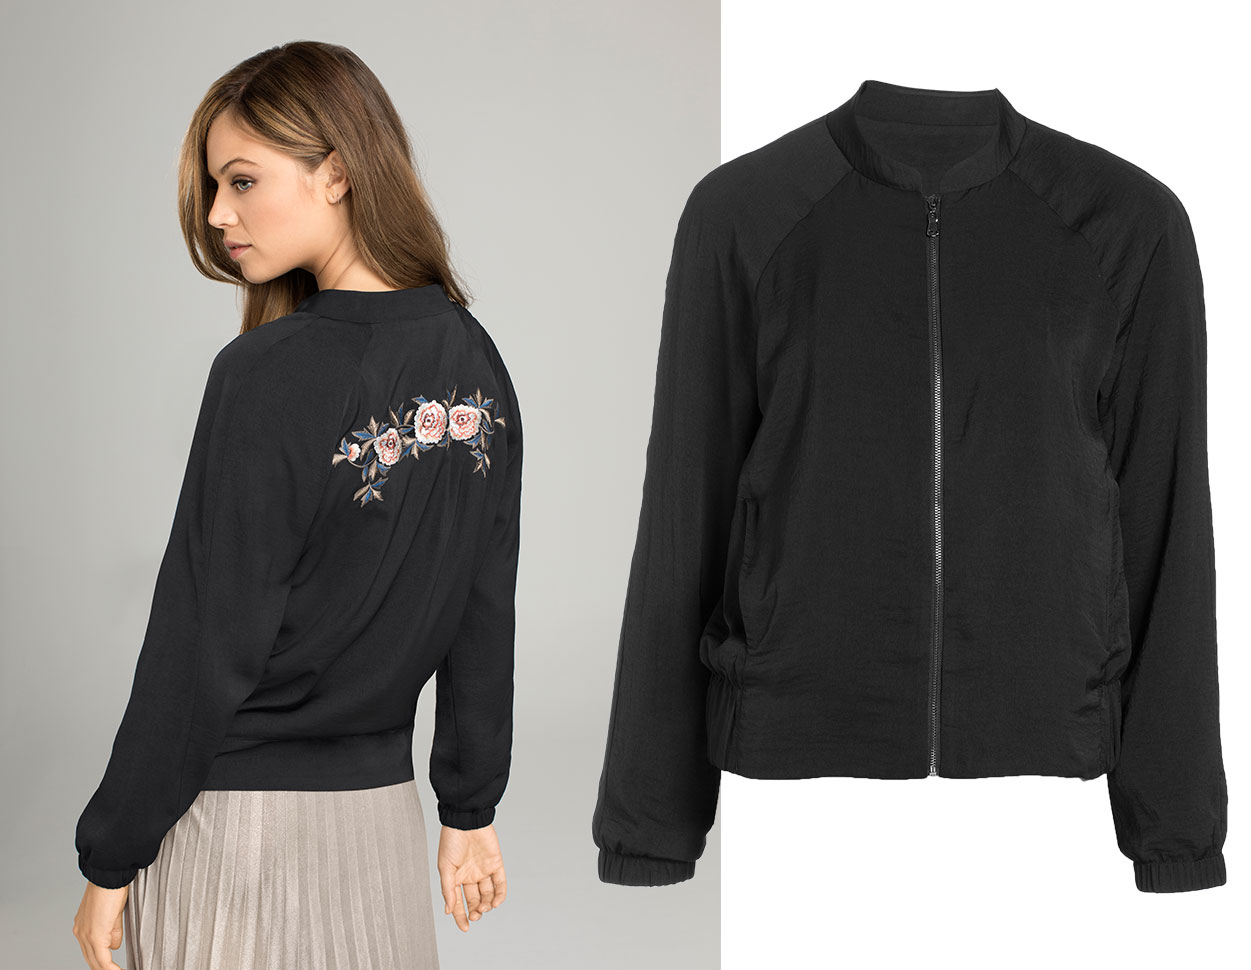 Luxe Style: go girly with embroidery. Shop the jacket.